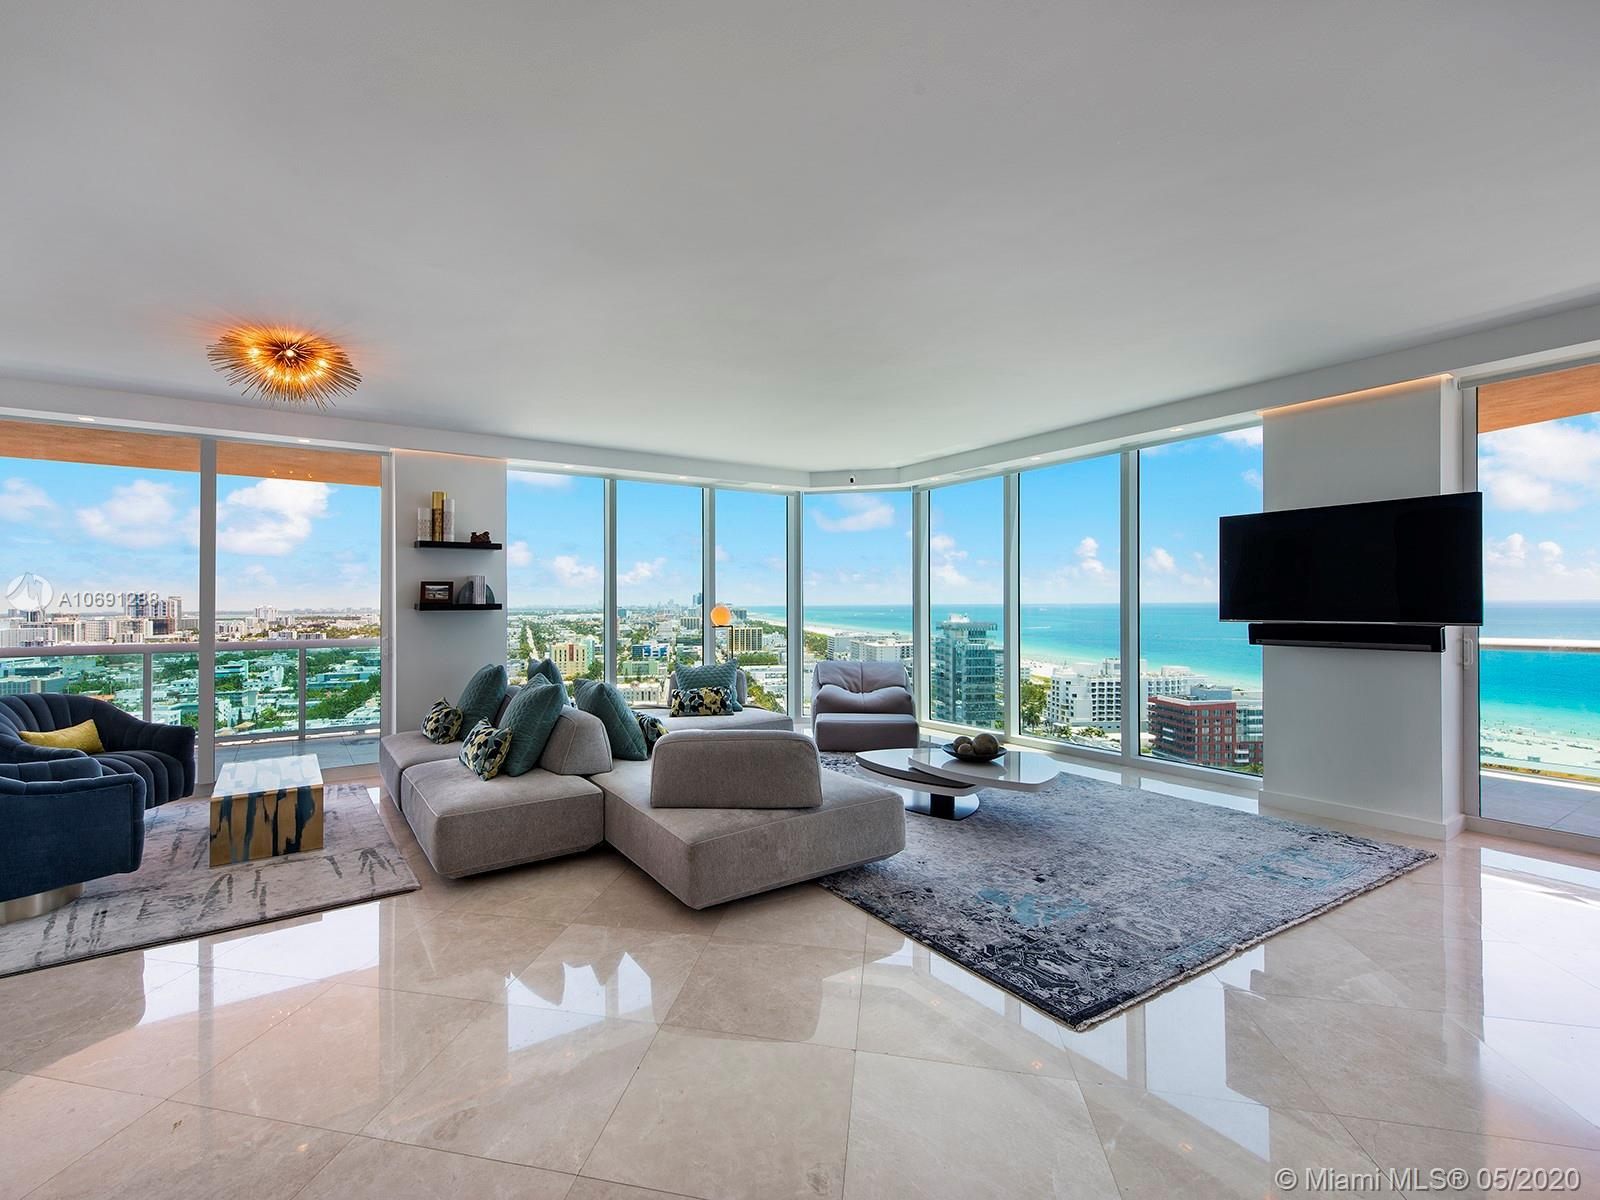 Fully renovated, this gorgeous 3-bed, 2.5-bath corner unit features an expansive floorplan with brea